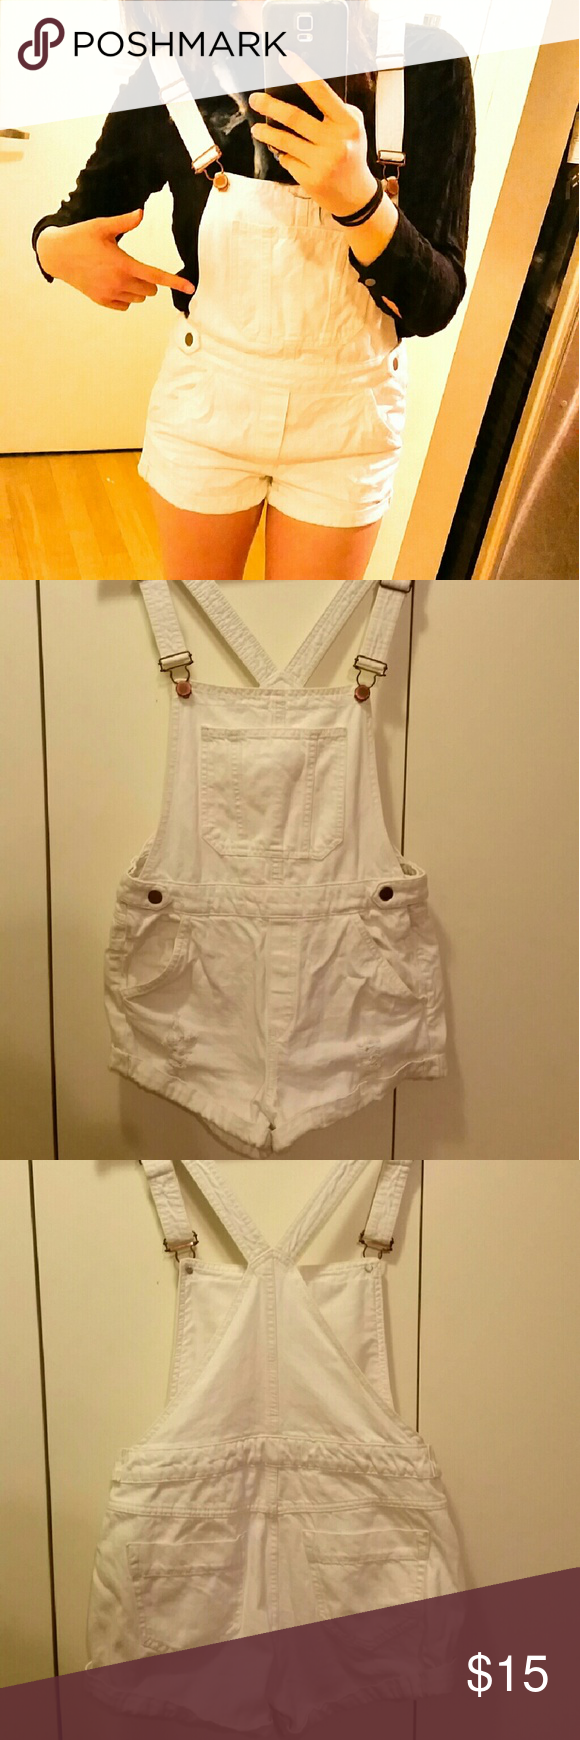 H&M white overall Cute white overall. Worn only once. H&M Pants Jumpsuits & Rompers